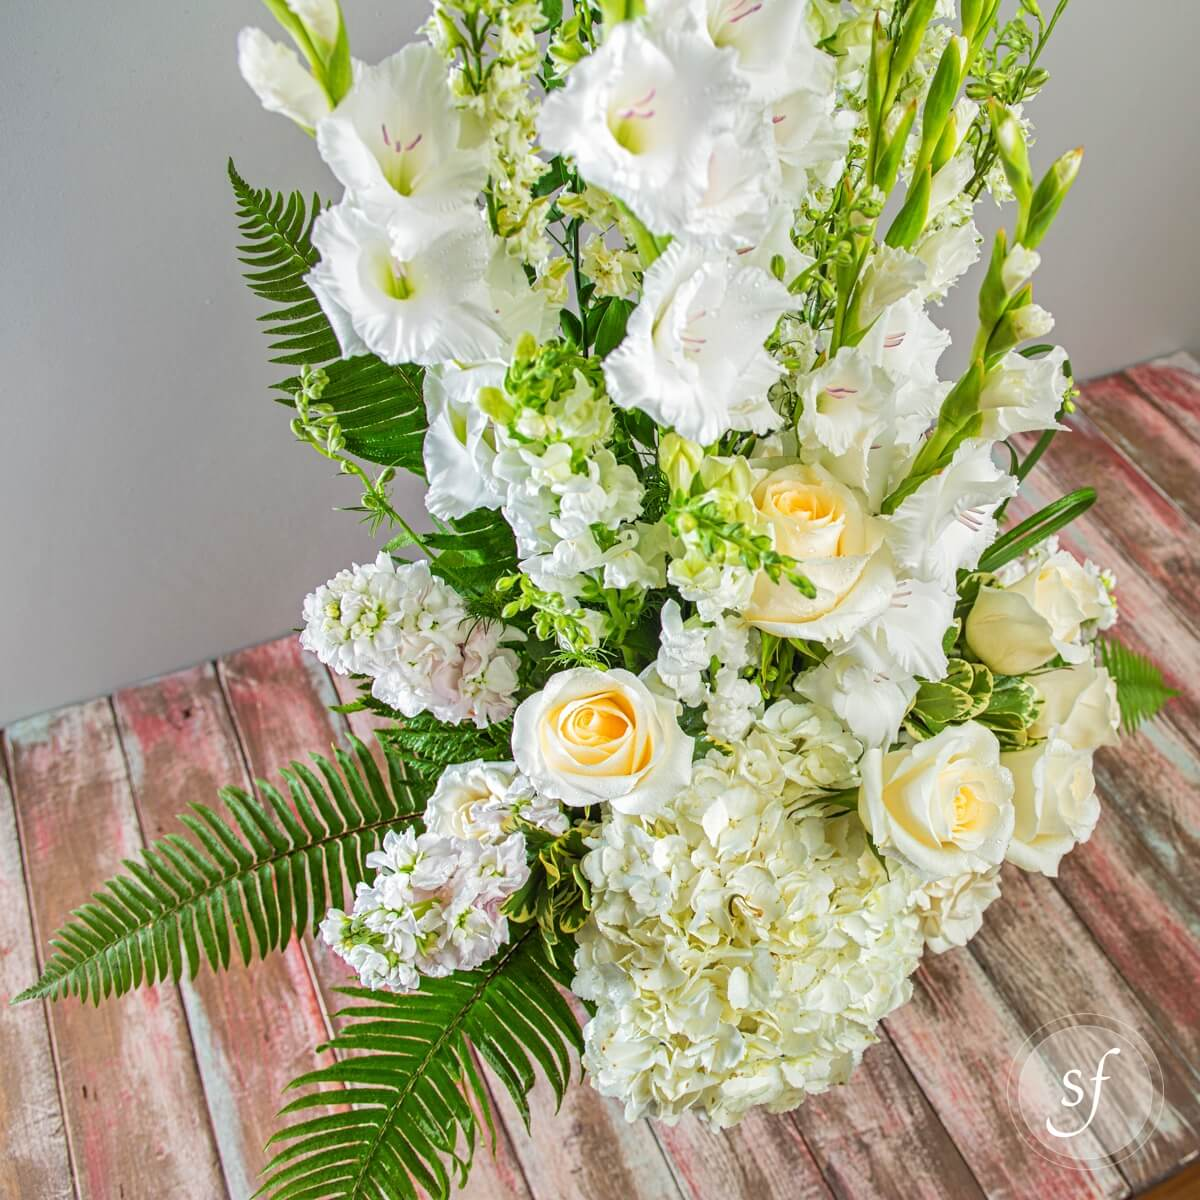 Peaceful urn in white sympathy steves floral express sympathy with this large and elegant funeral arrangement featuring white gladioli roses hydrangea mightylinksfo